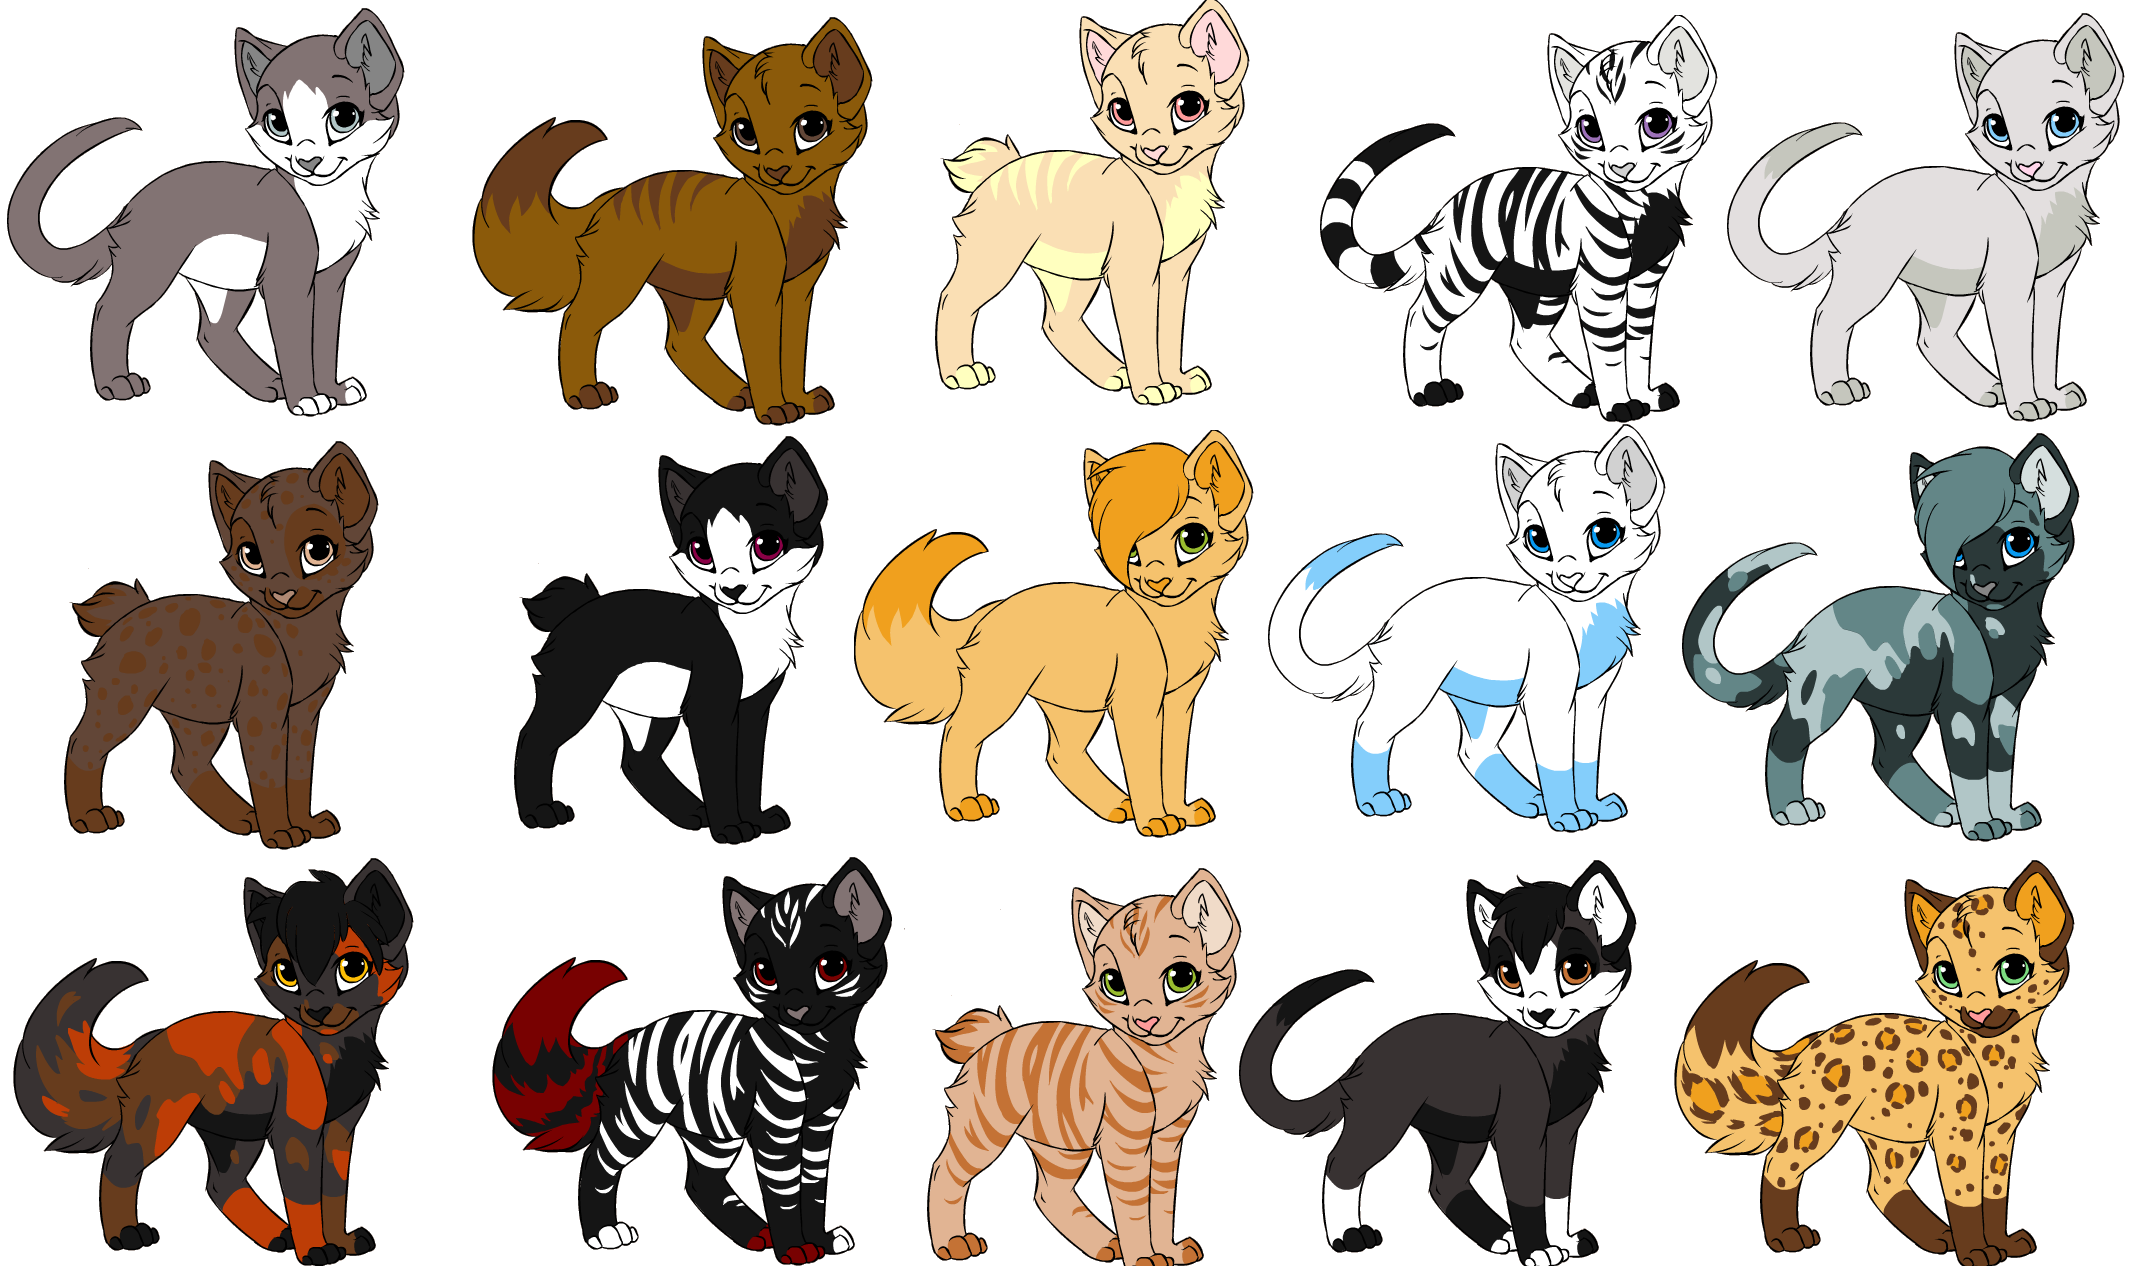 warrior cats images Google Search Warrior cats